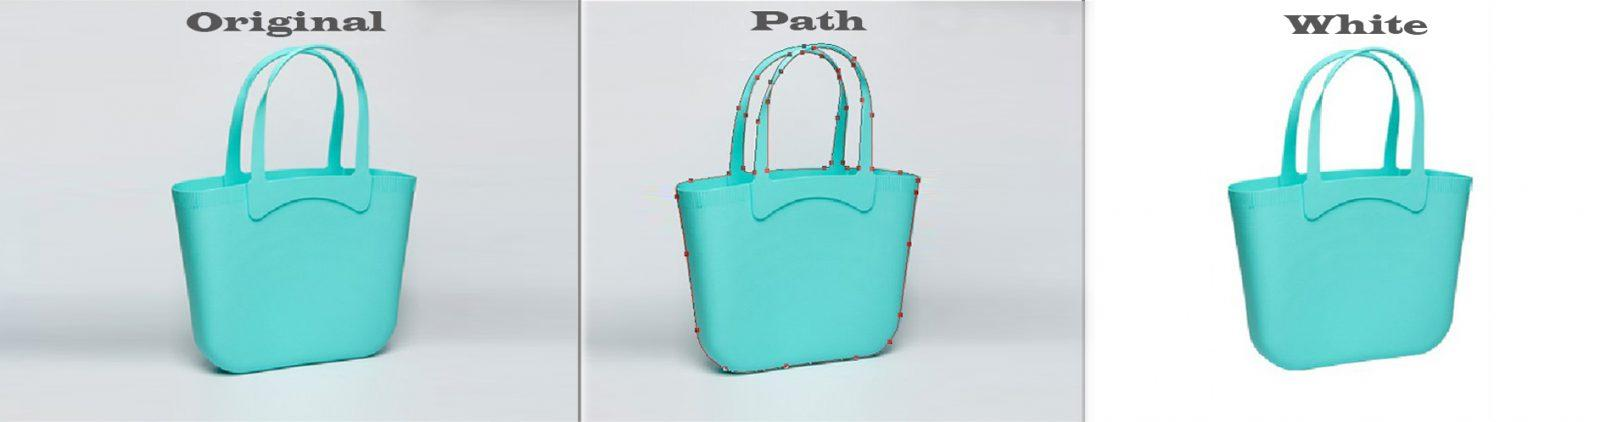 Clipping Path 1 - Clipping Path